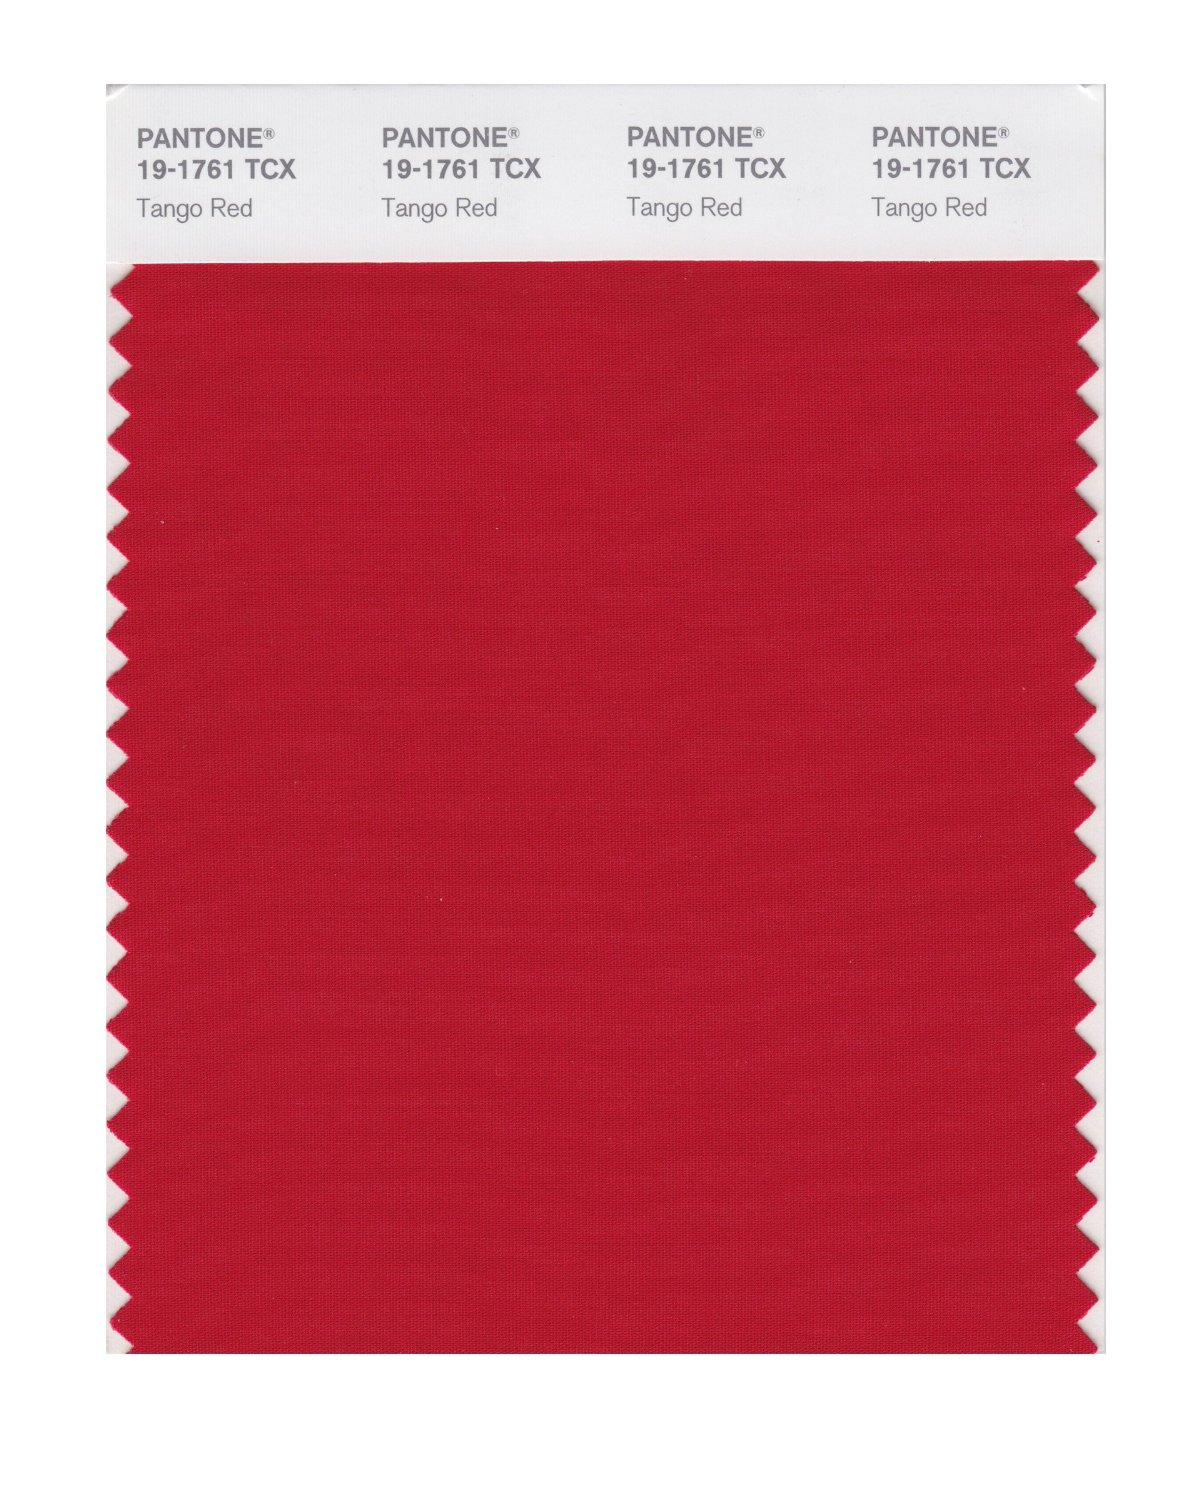 Pantone Smart Swatch 19-1761 Tango Red